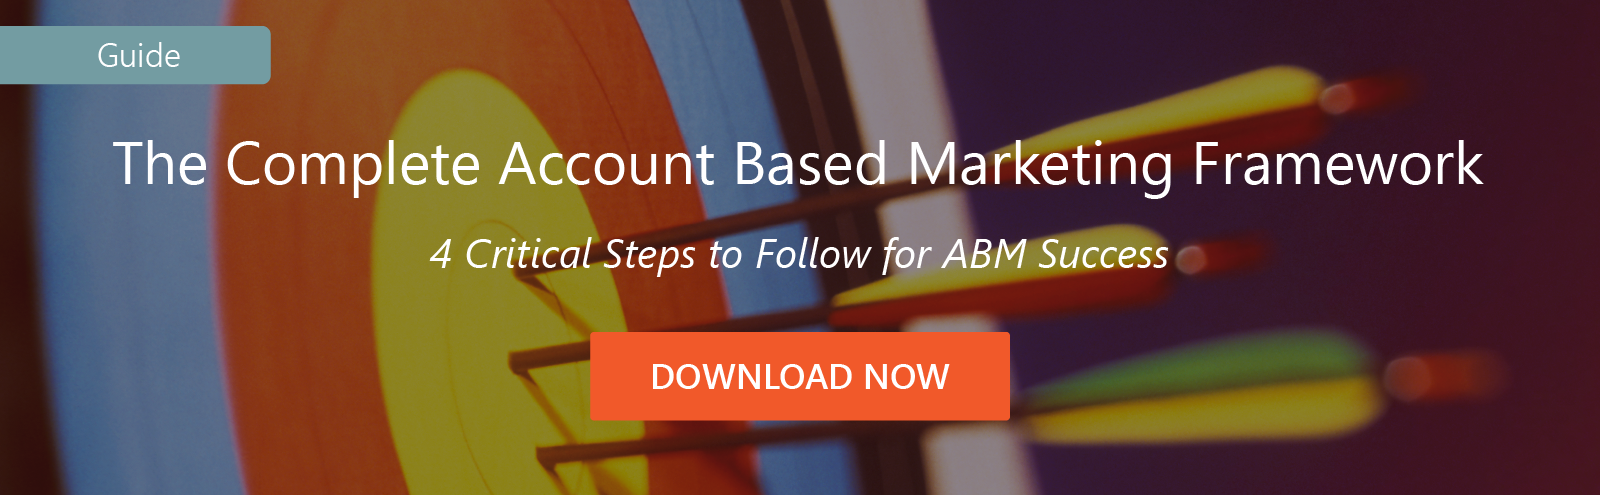 Account Based Marketing framework